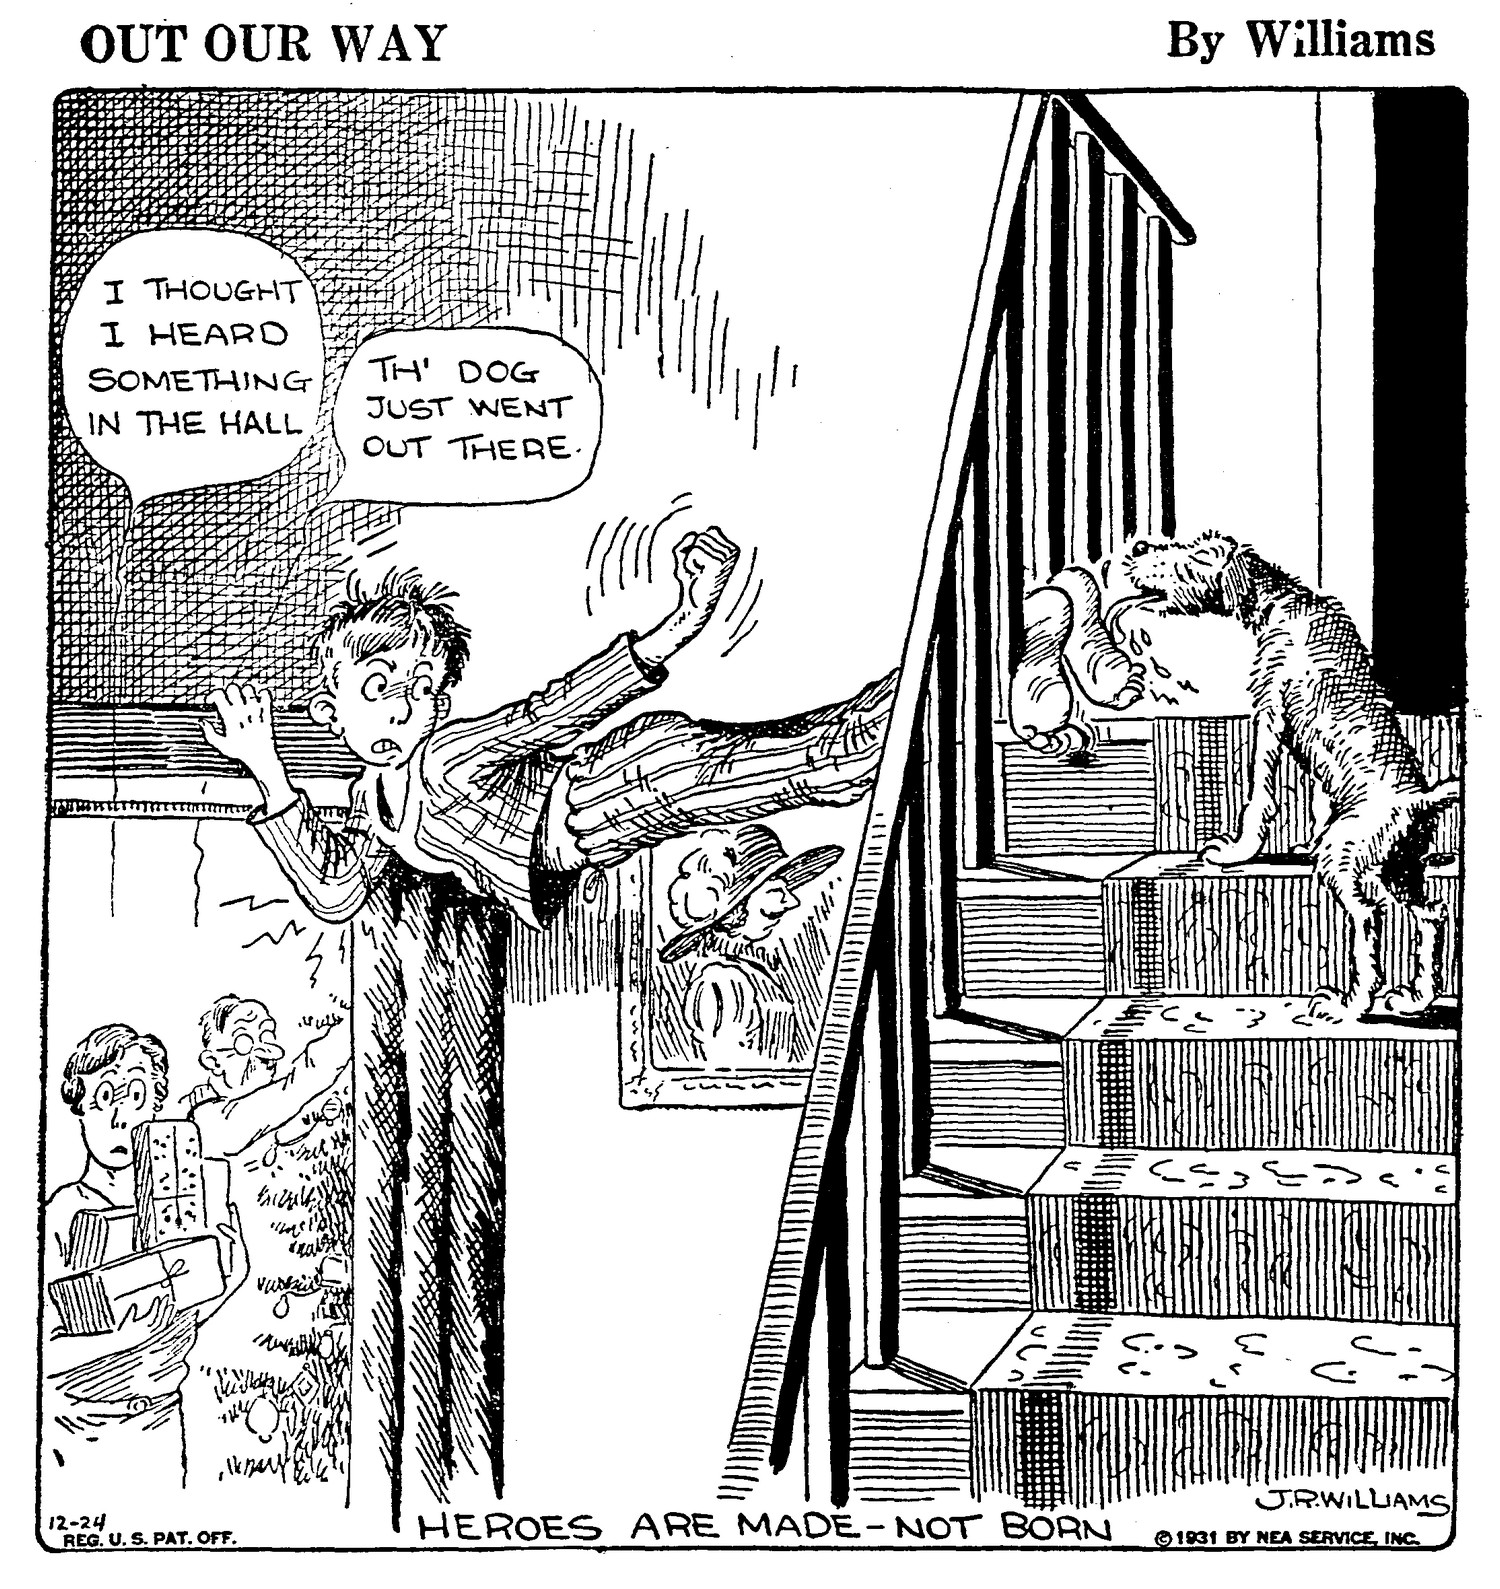 Out Our Way, December 24, 1931